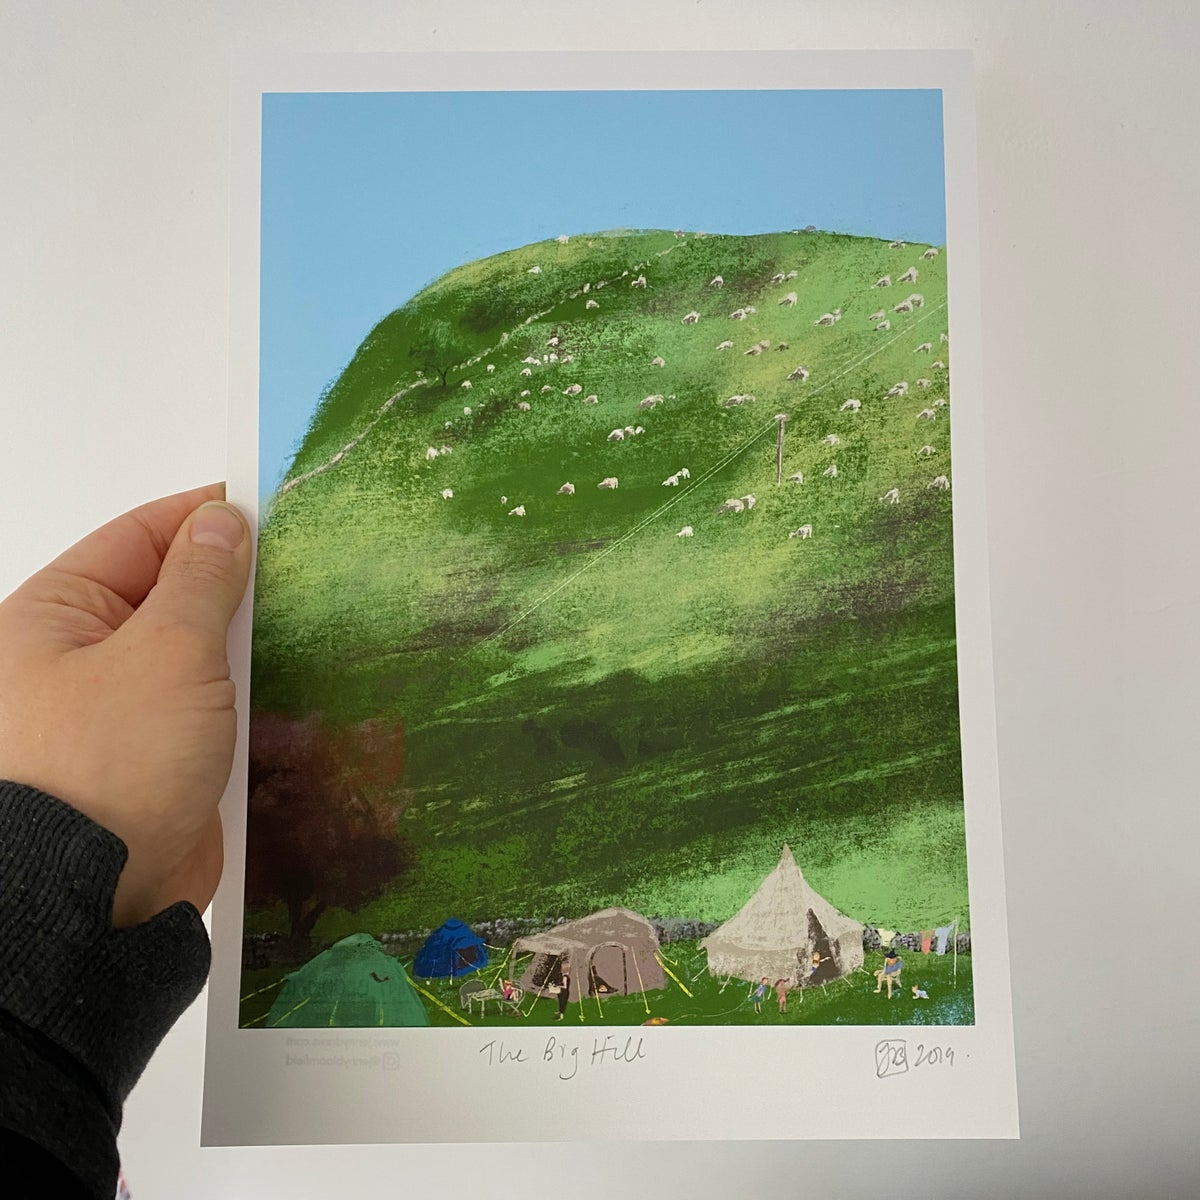 Image of 'The Big Hill' - A4/A3 archive quality print